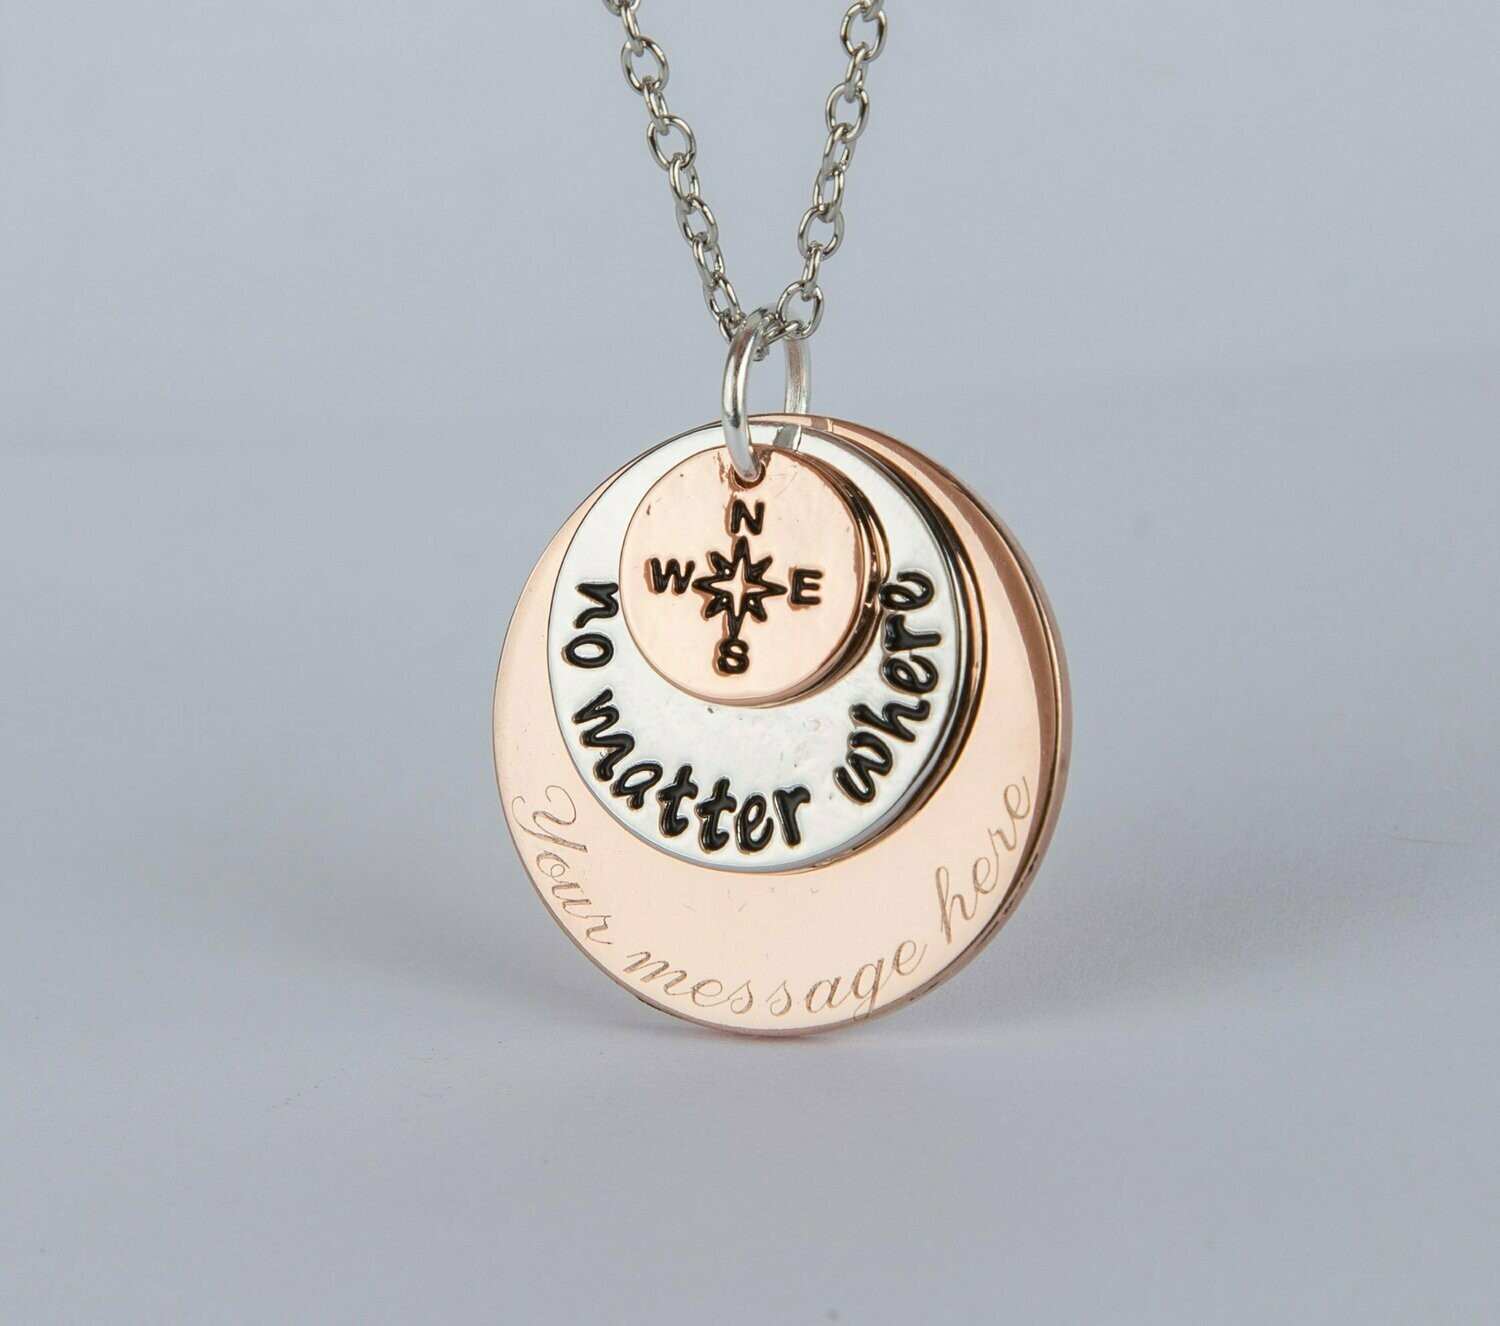 Long distance best friends gift necklace, personalized necklace